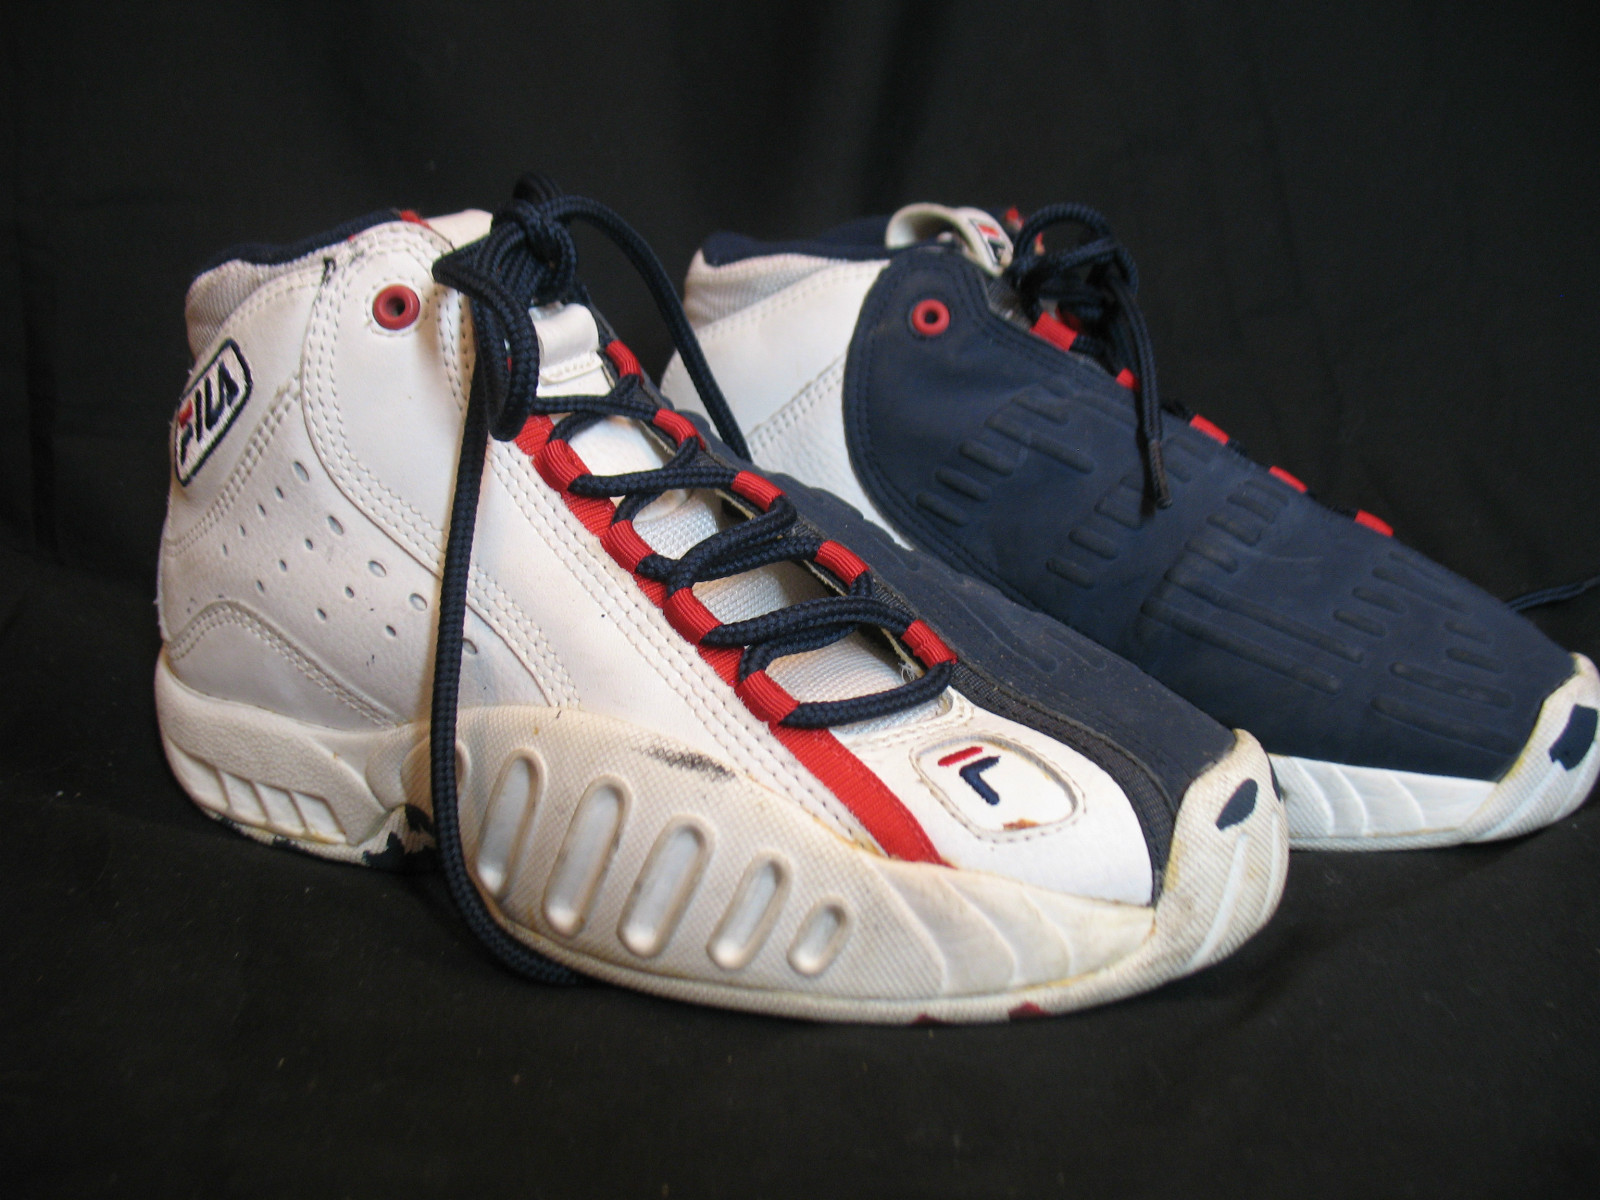 FILA Lean Mid Jerry Stackhouse Basketball Shoe 1998 DeFY New York